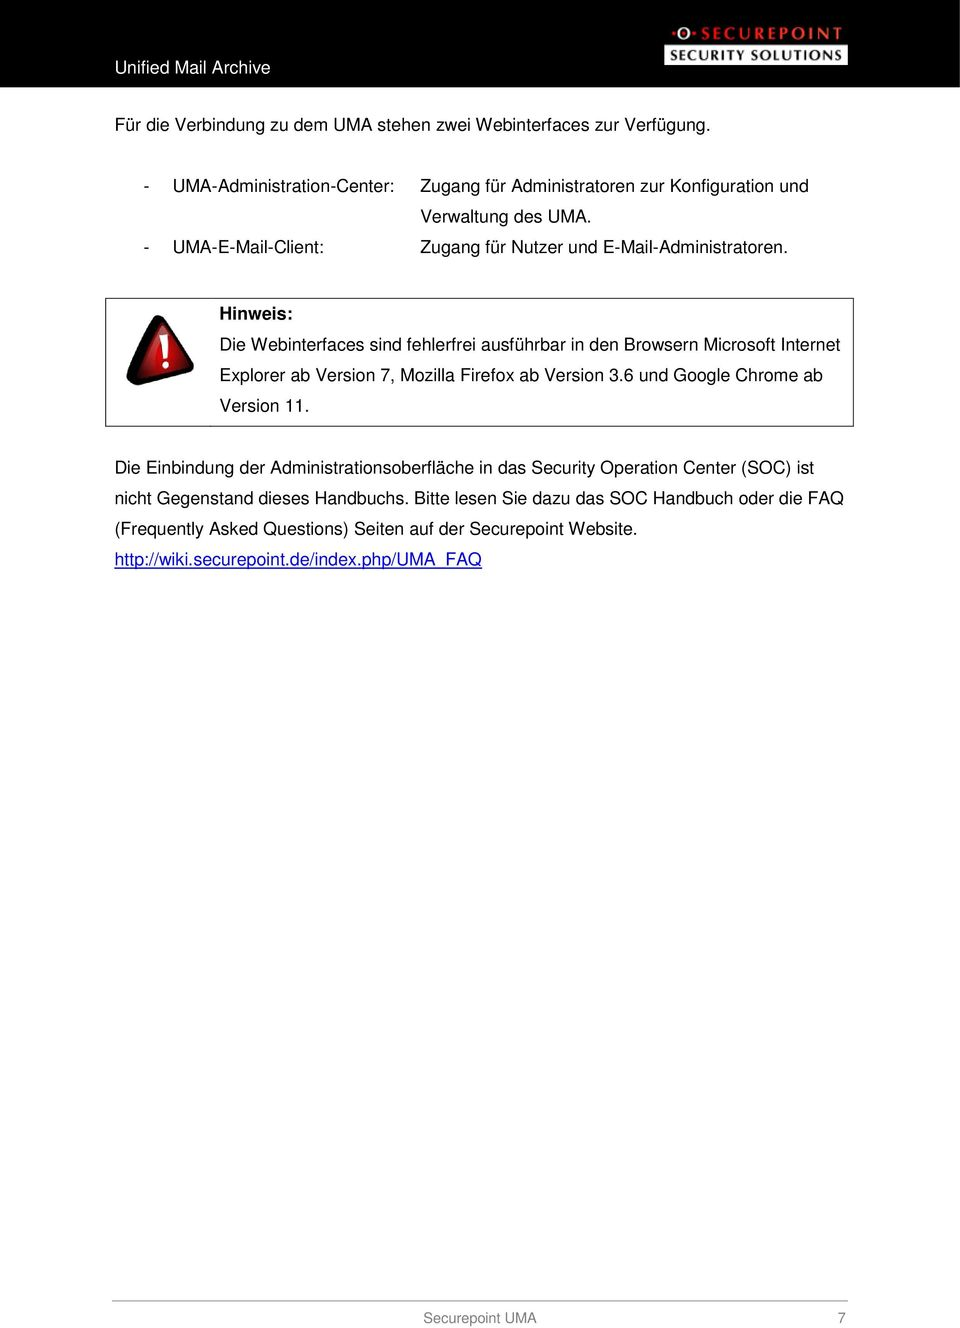 Hinweis: Die Webinterfaces sind fehlerfrei ausführbar in den Browsern Microsoft Internet Explorer ab Version 7, Mozilla Firefox ab Version 3.6 und Google Chrome ab Version 11.